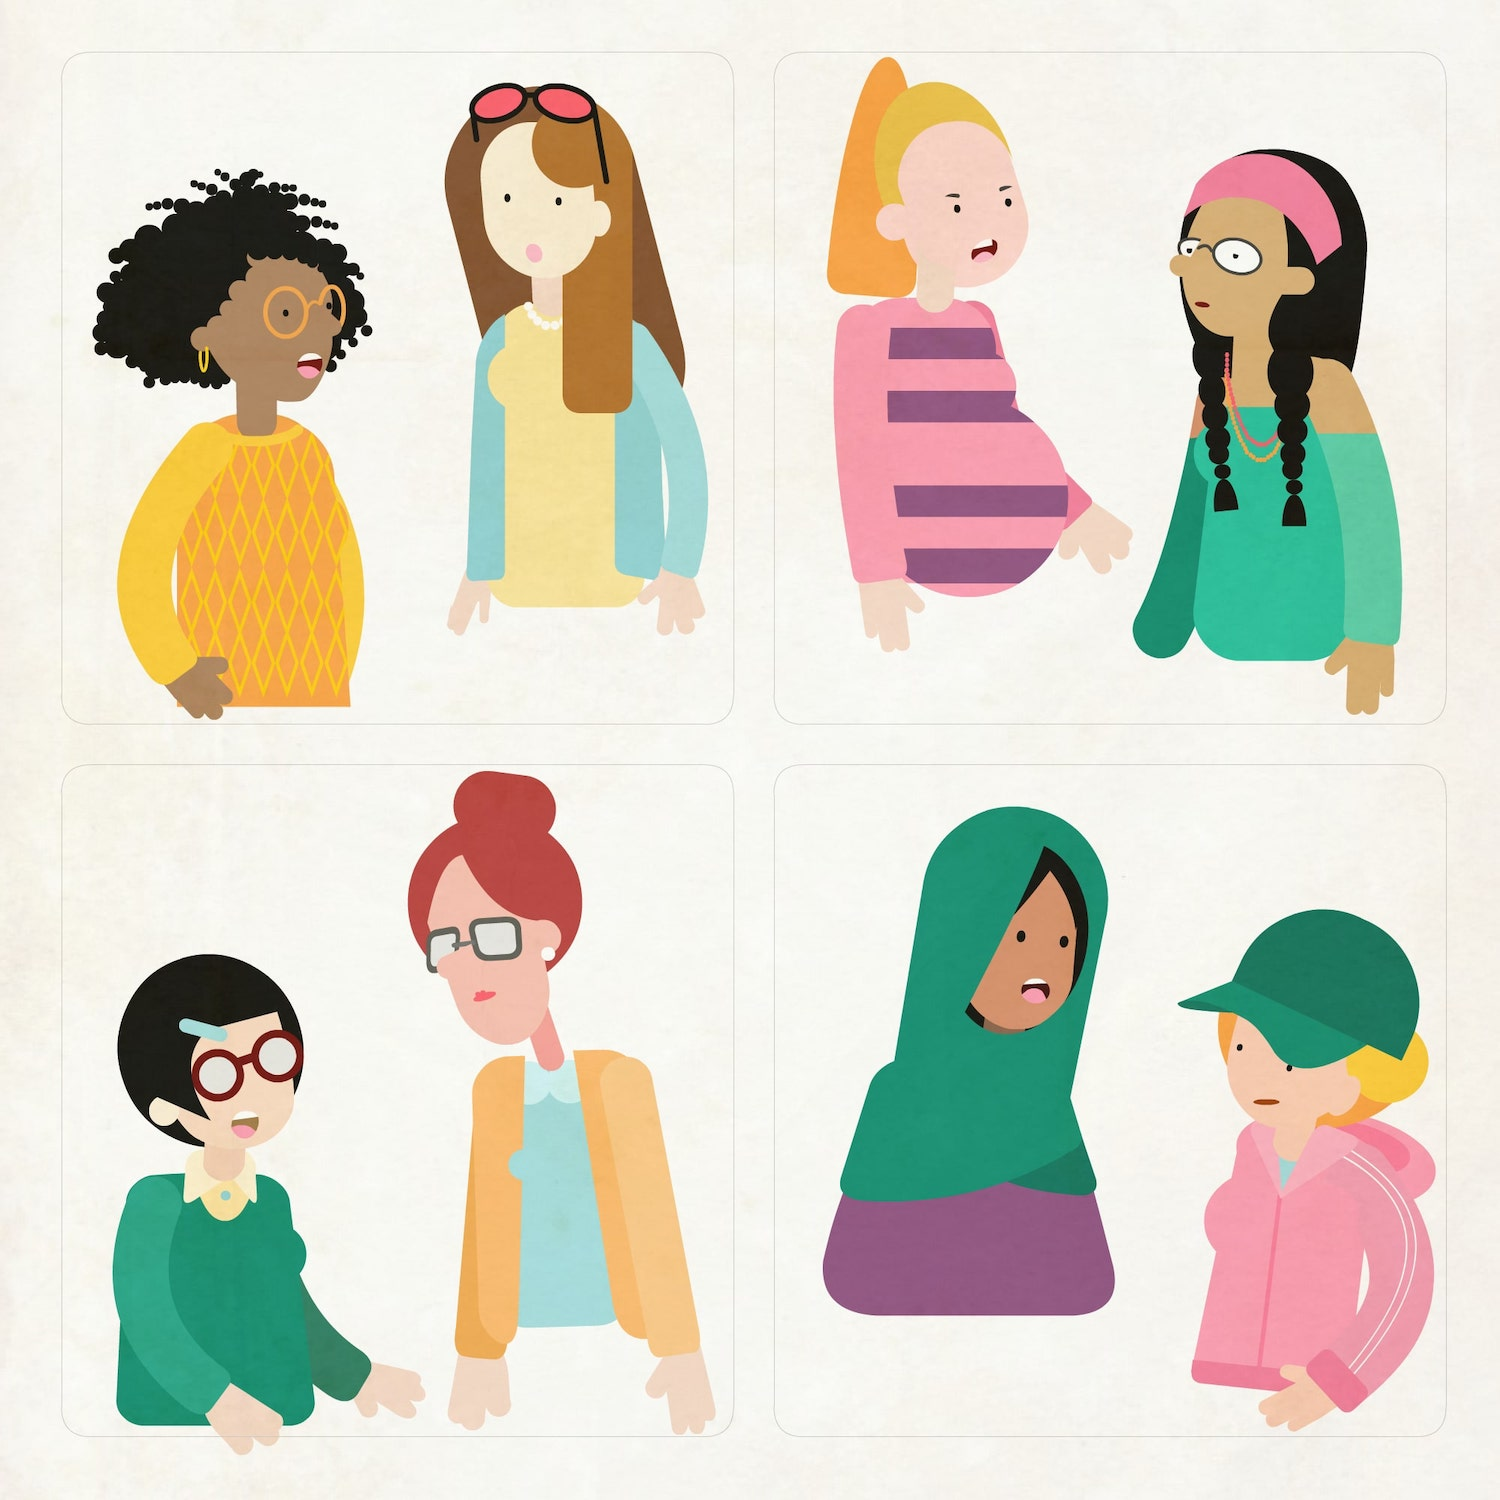 Ladies chatting NCT illustration - Luella Jane